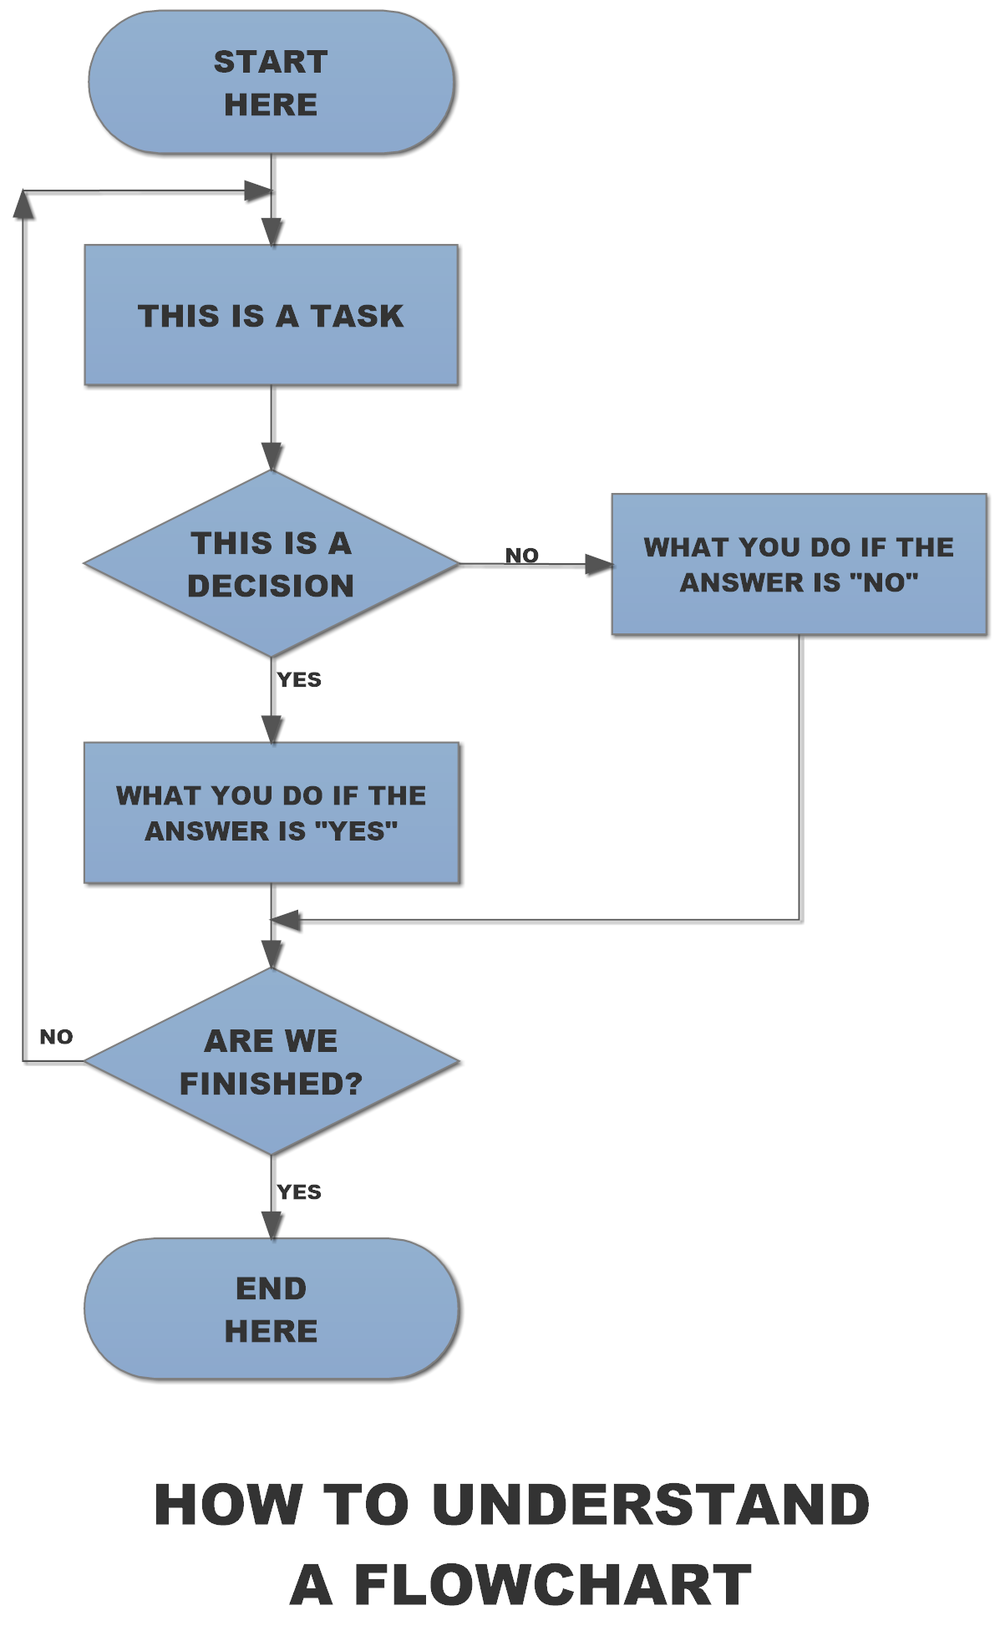 Am I Next? How to understand a flowchart.